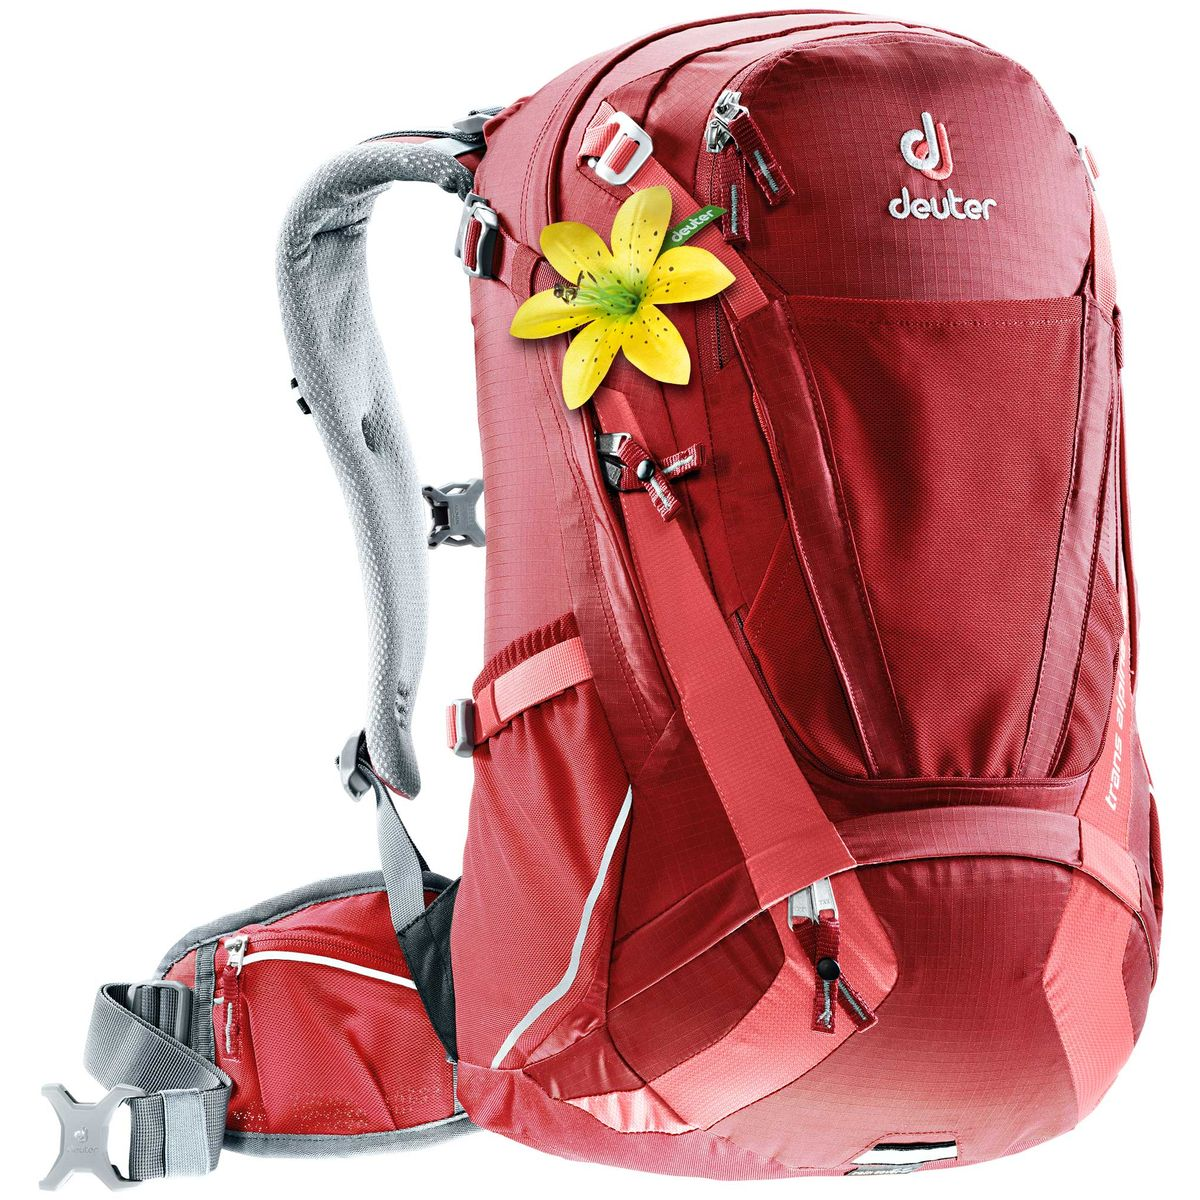 TRANS ALPINE 28 SL women's backpack